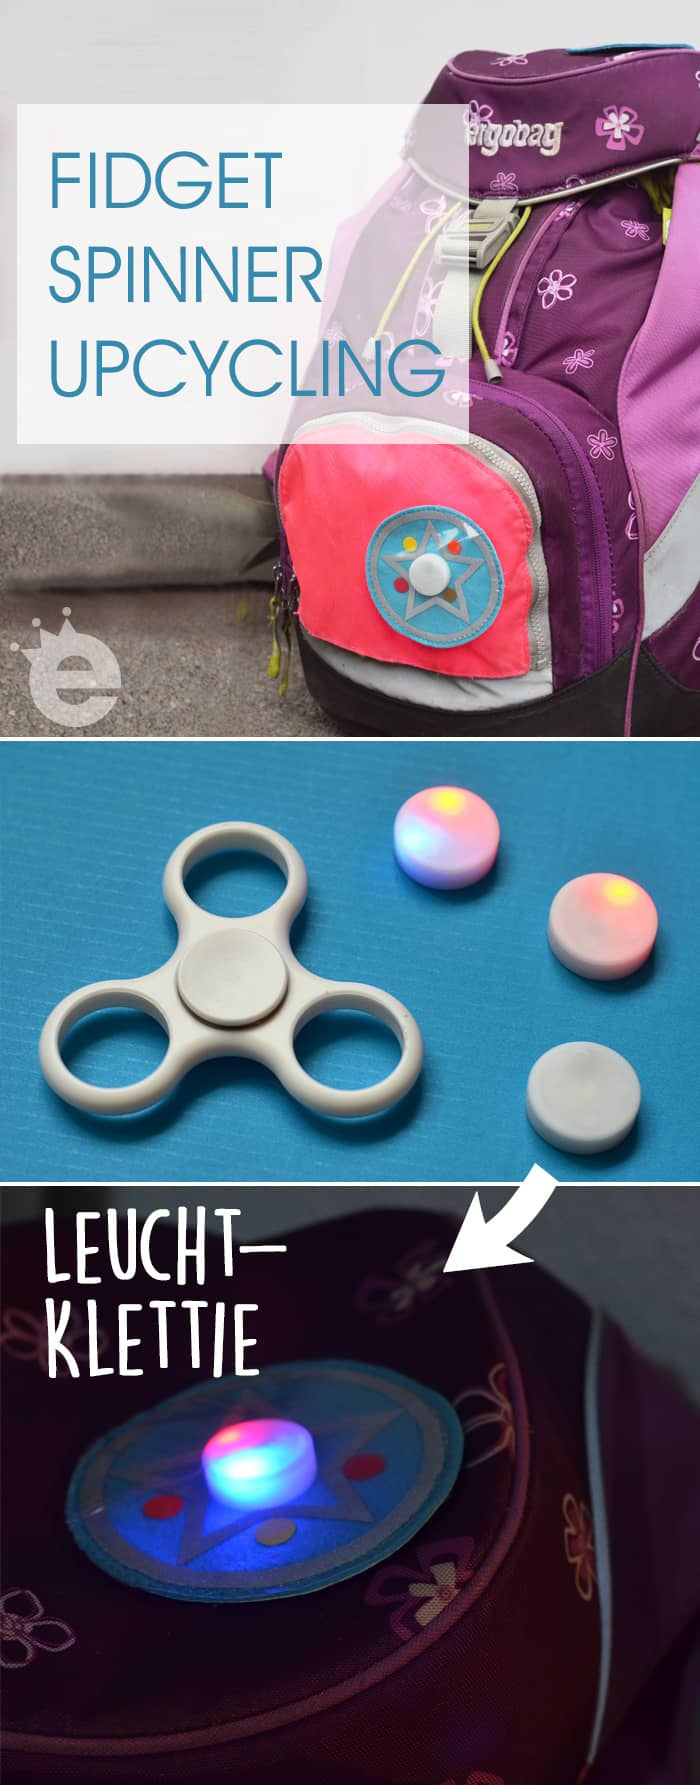 fidget spinner upcycling kletties f r den schulranzen. Black Bedroom Furniture Sets. Home Design Ideas